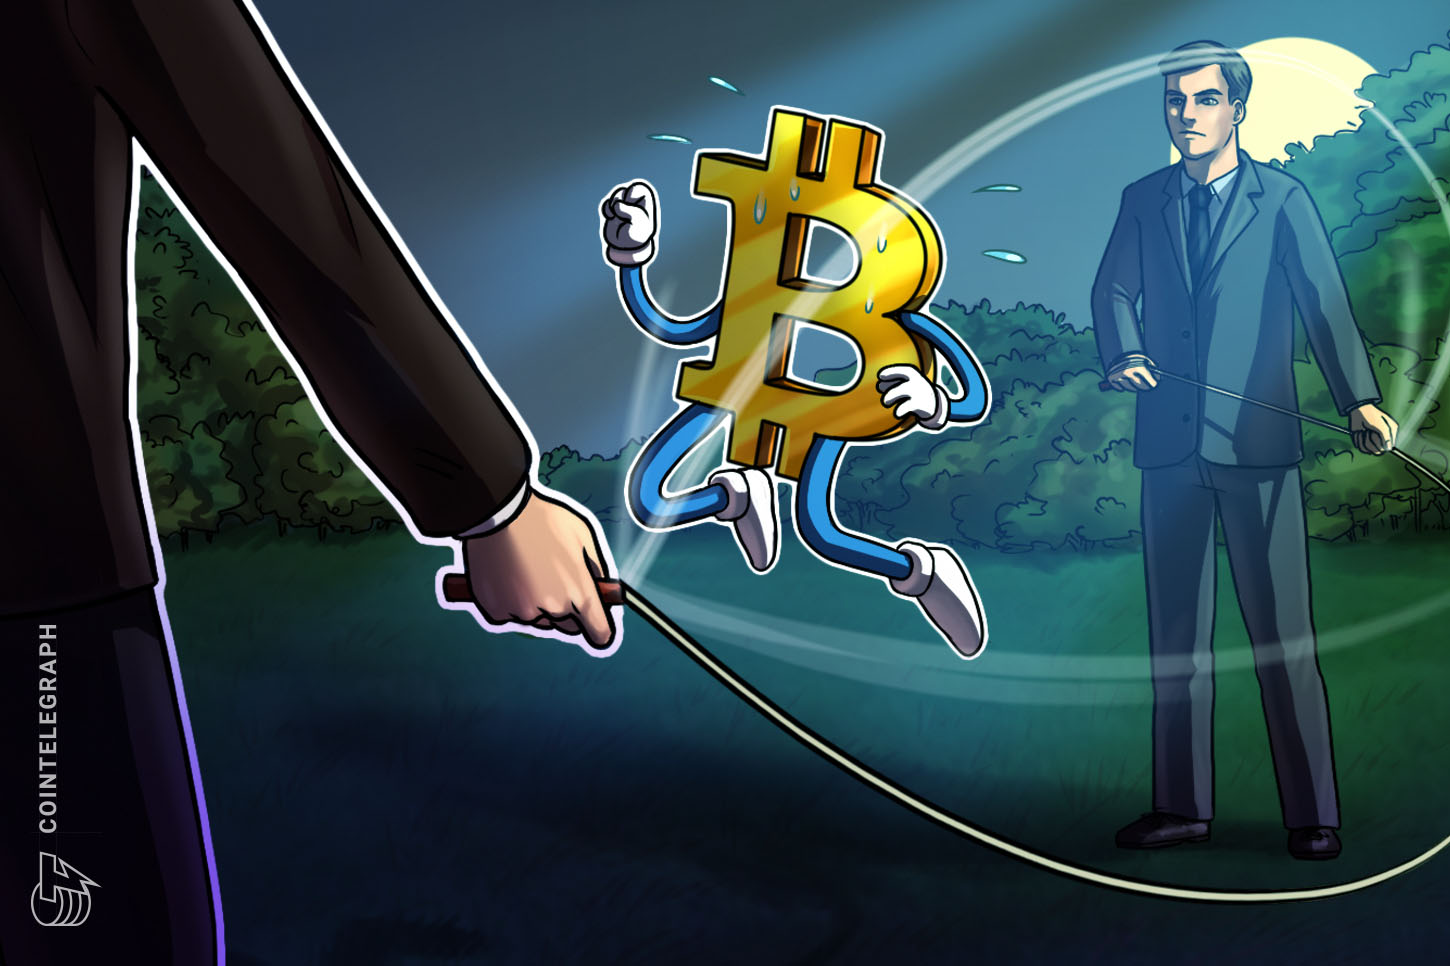 Bitcoin 'real' daily trading volume tops $22B as BTC price recovers